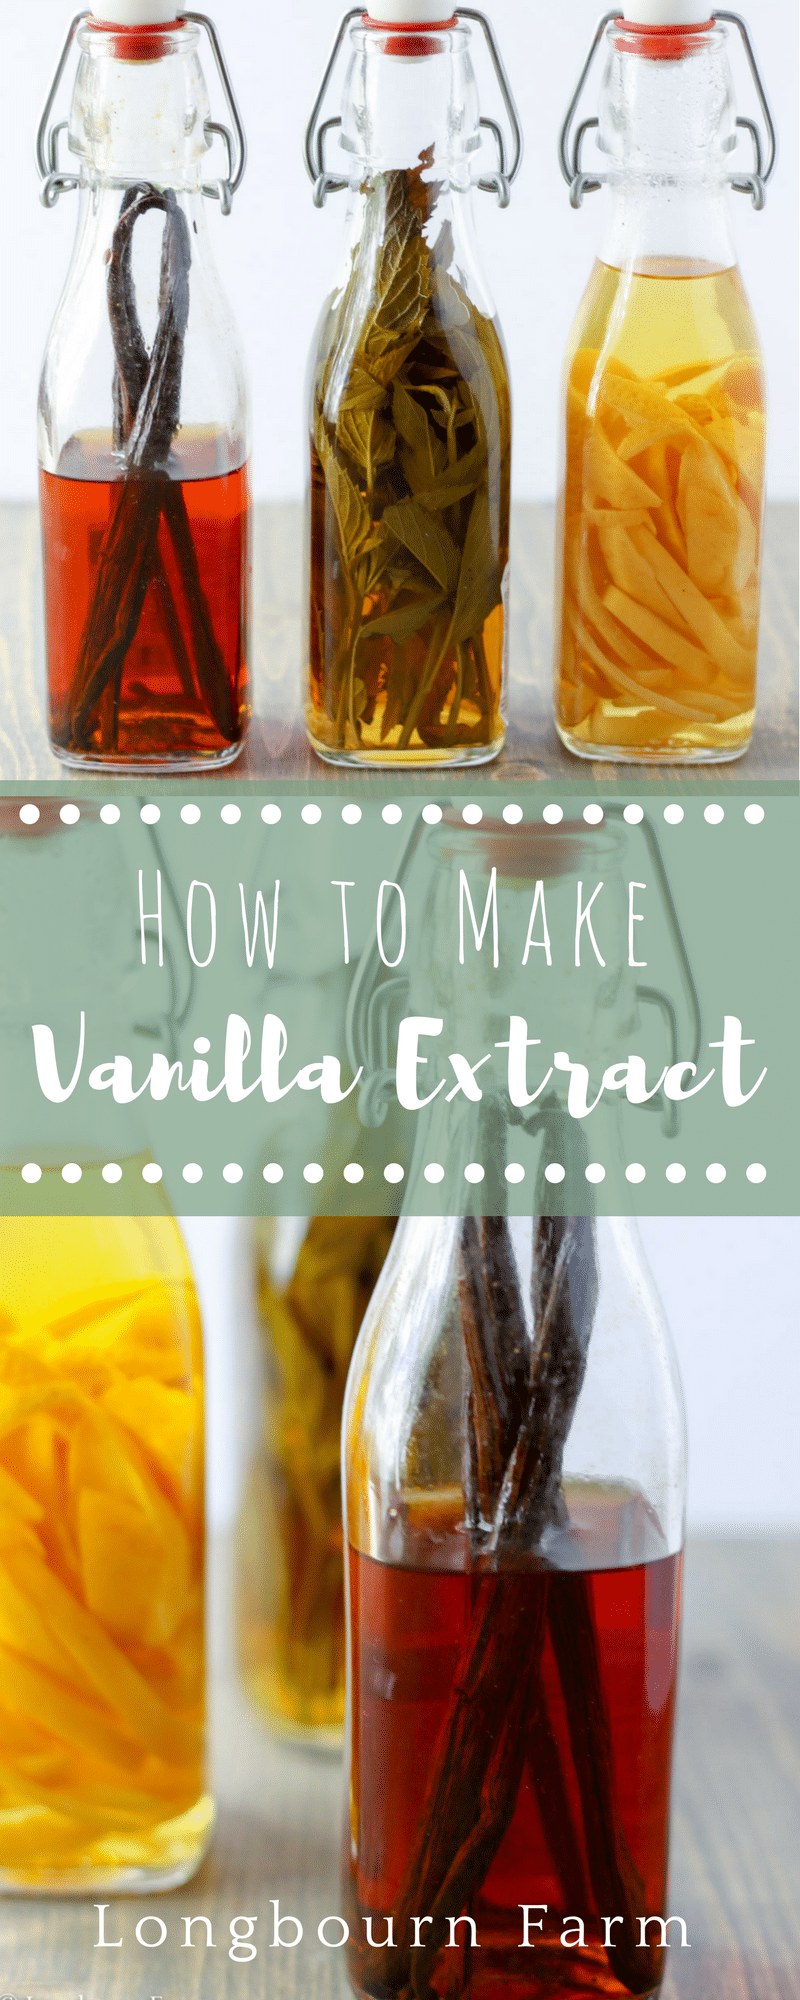 Learn how to make vanilla extract! Very detailed instructions to give you all the information you need. Homemade vanilla extract is easy and fun to make!